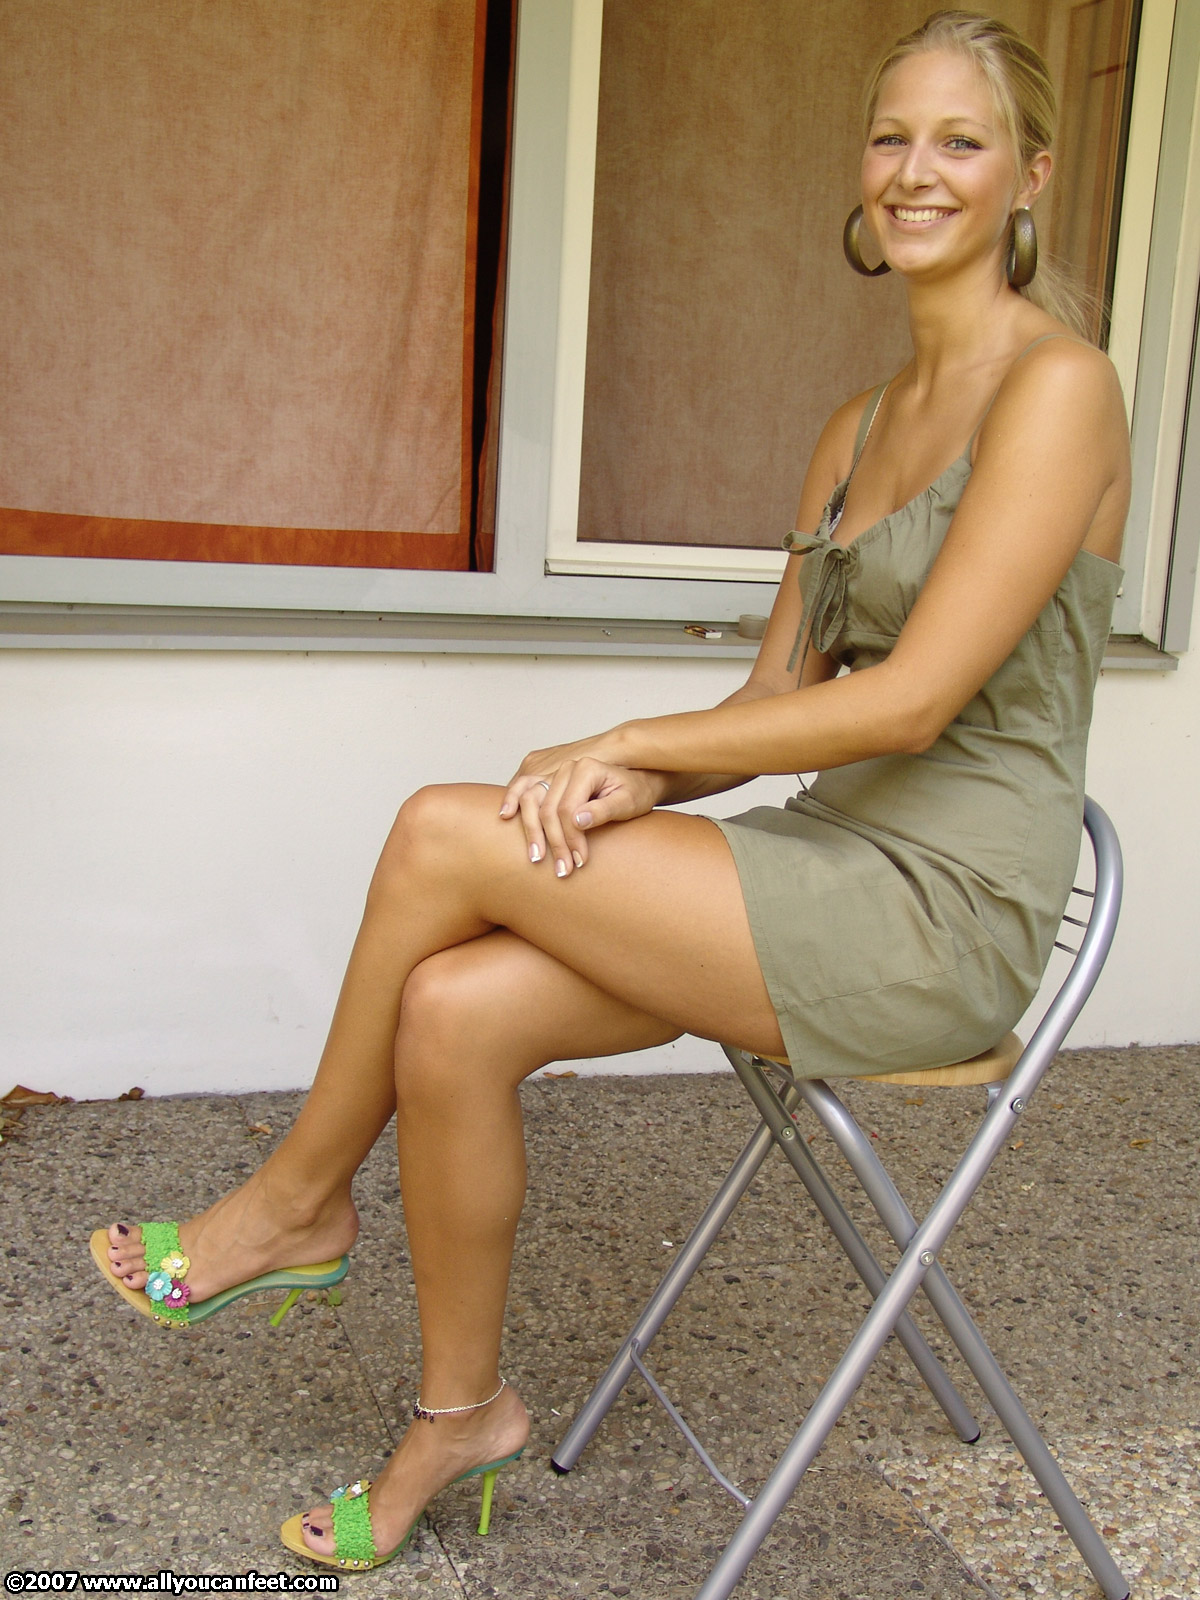 For all nylons lovers 2